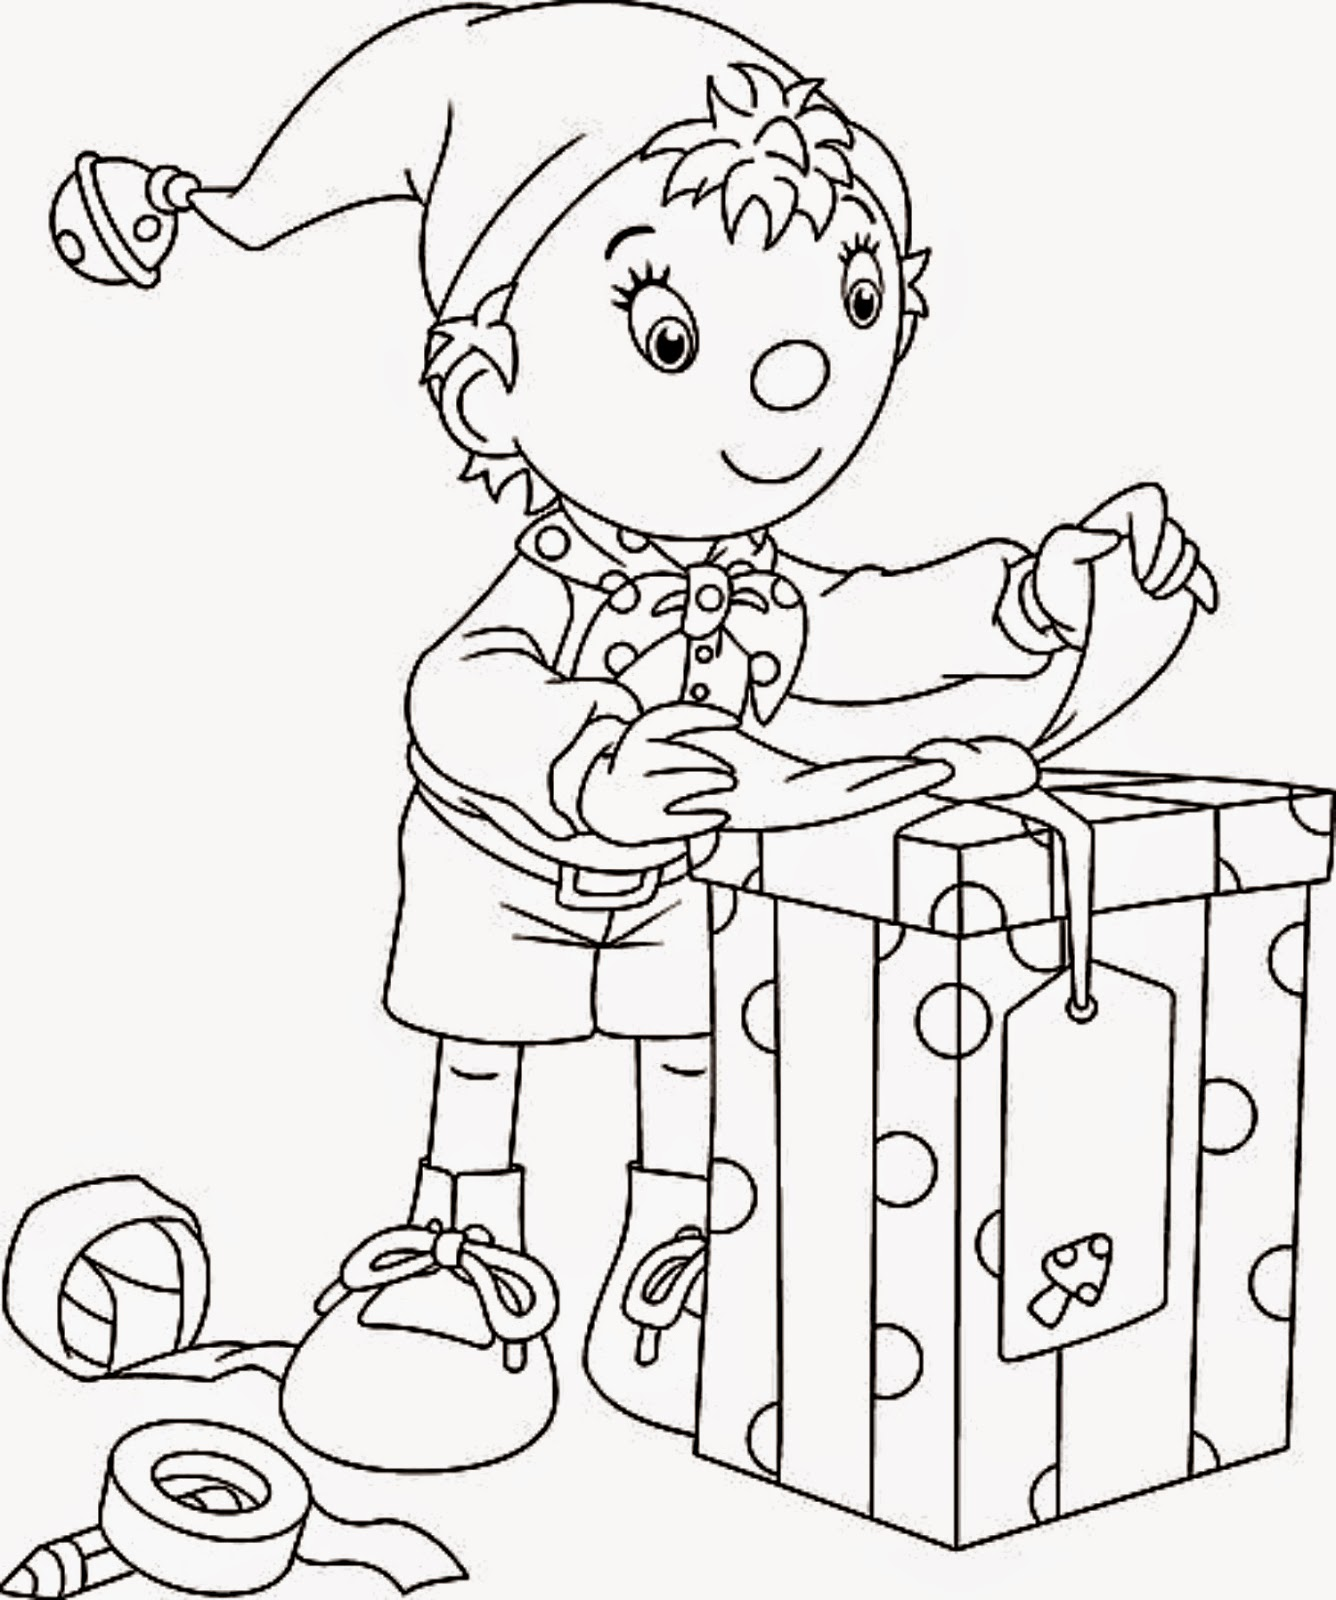 Santa S Elf Coloring Pages Printable With Christmas Free And